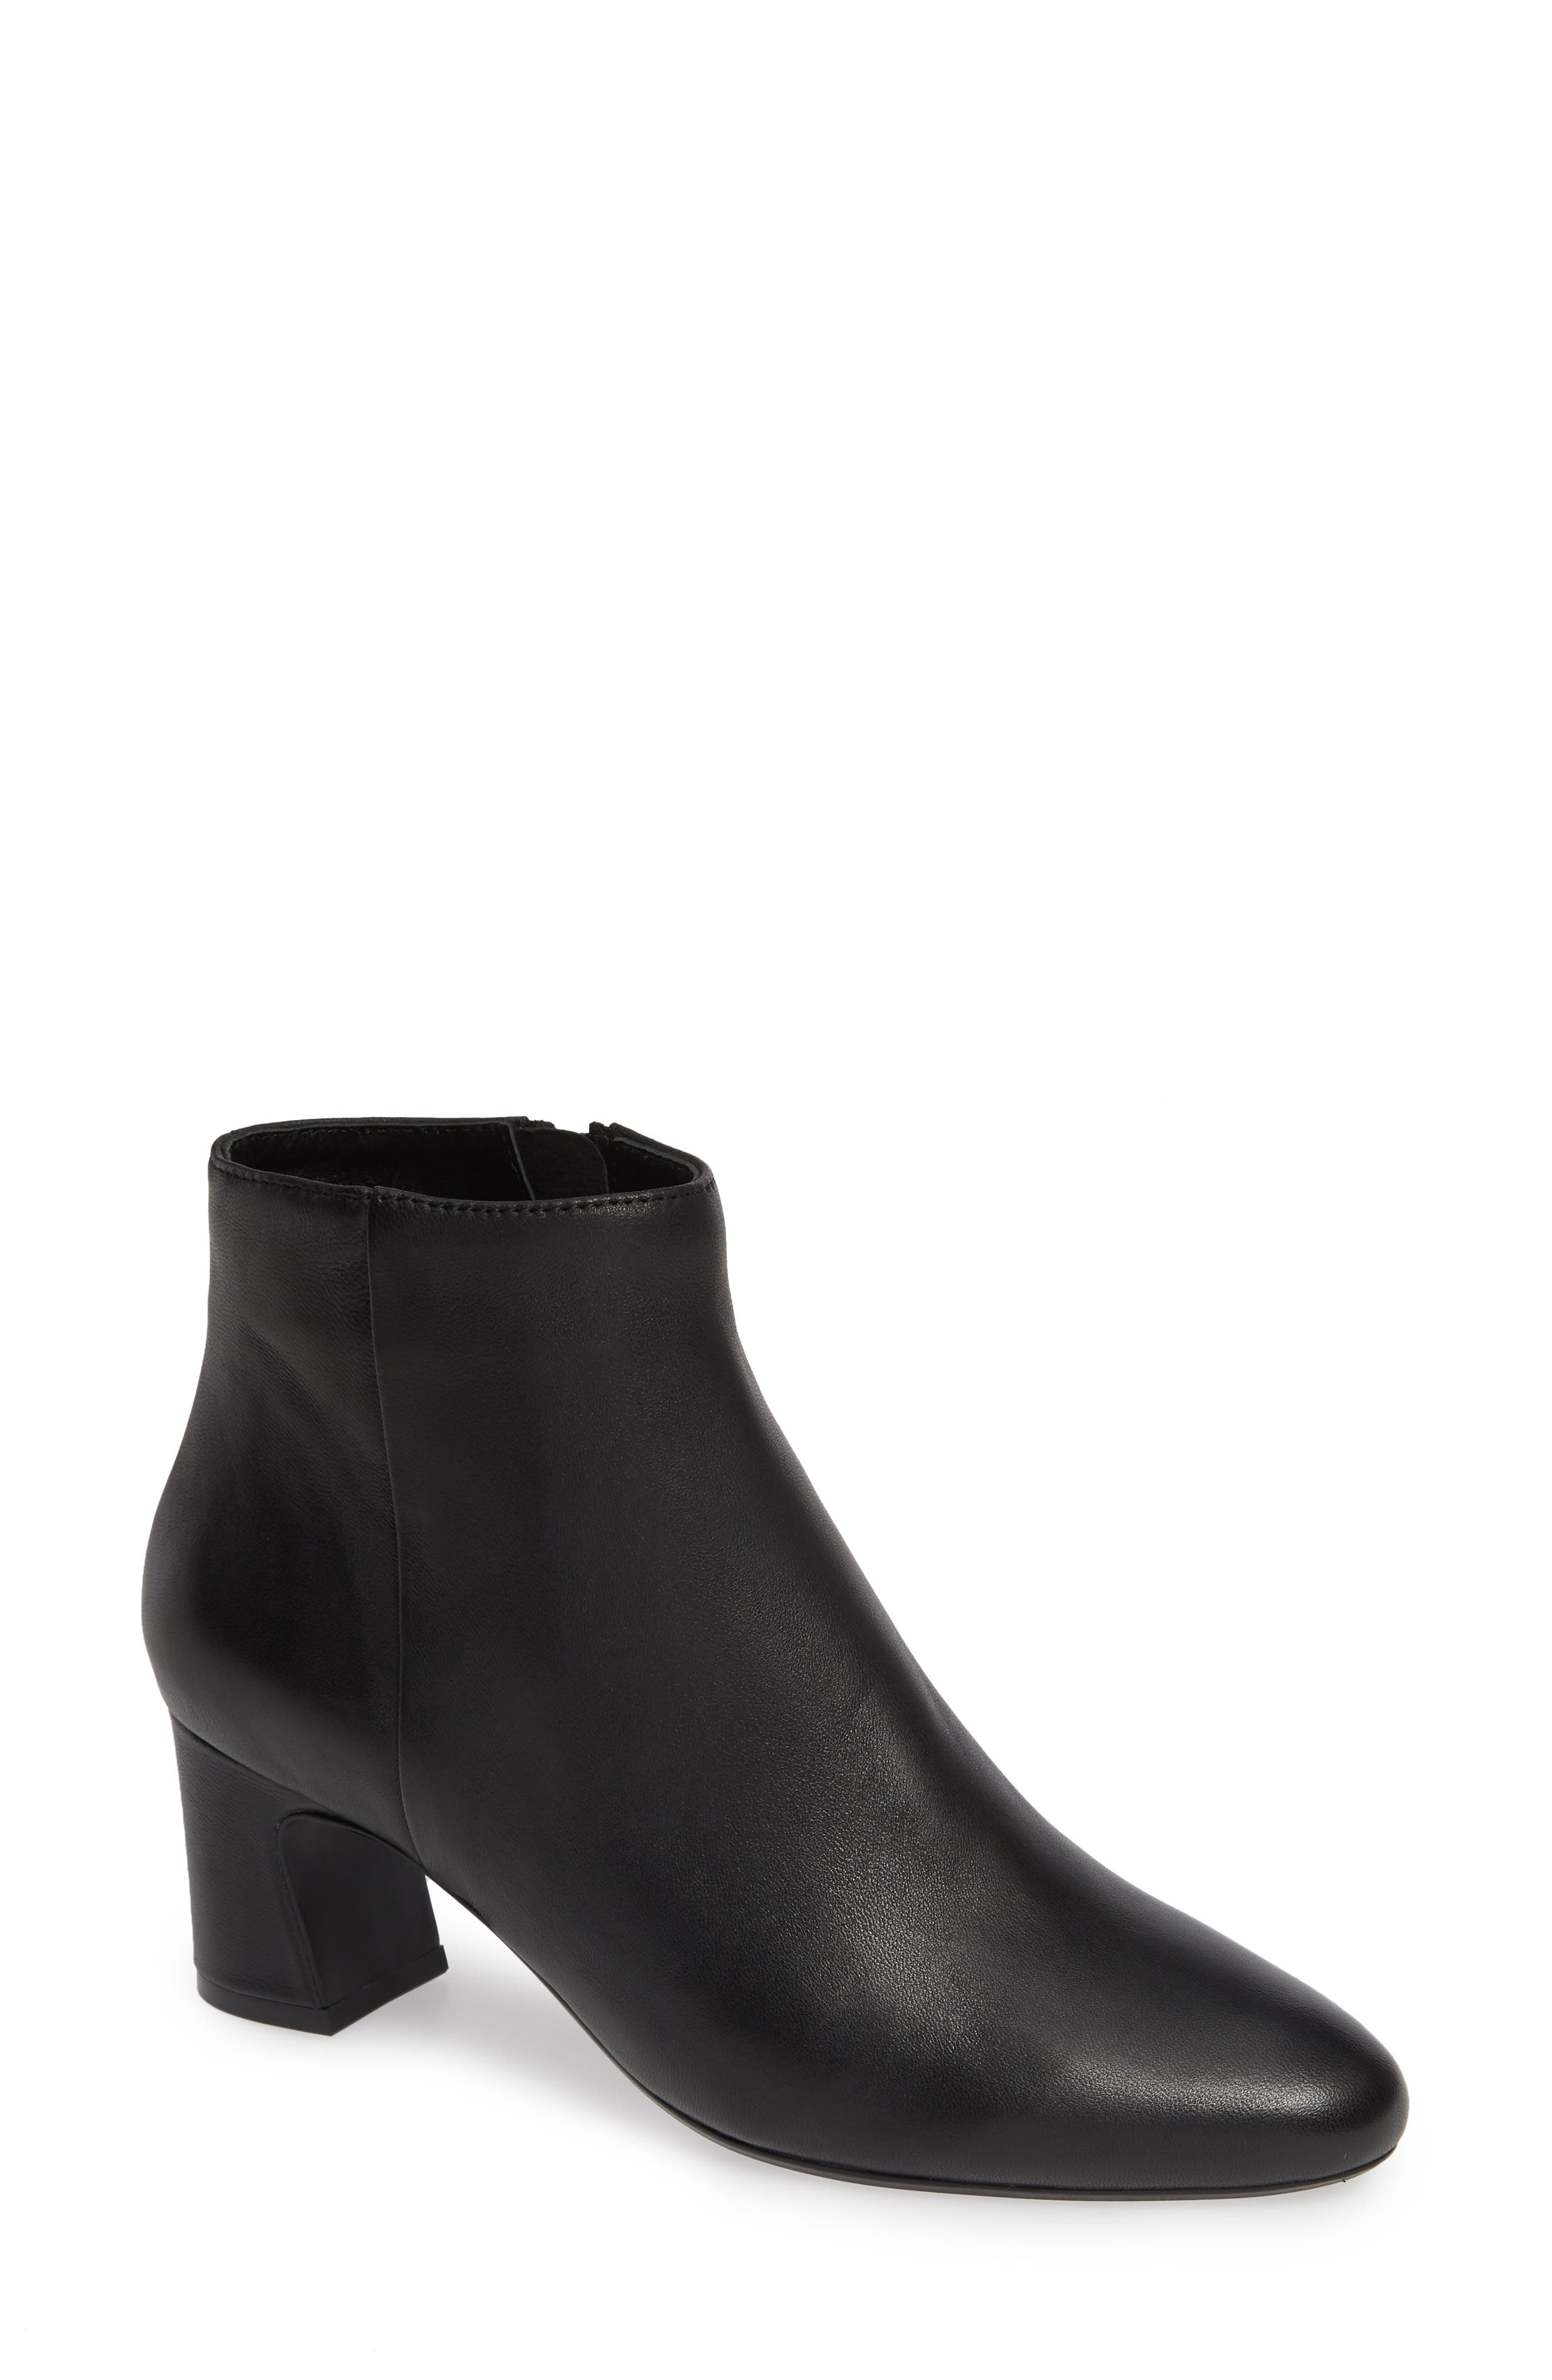 Dany Bootie,                             Main thumbnail 1, color,                             BLACK LEATHER